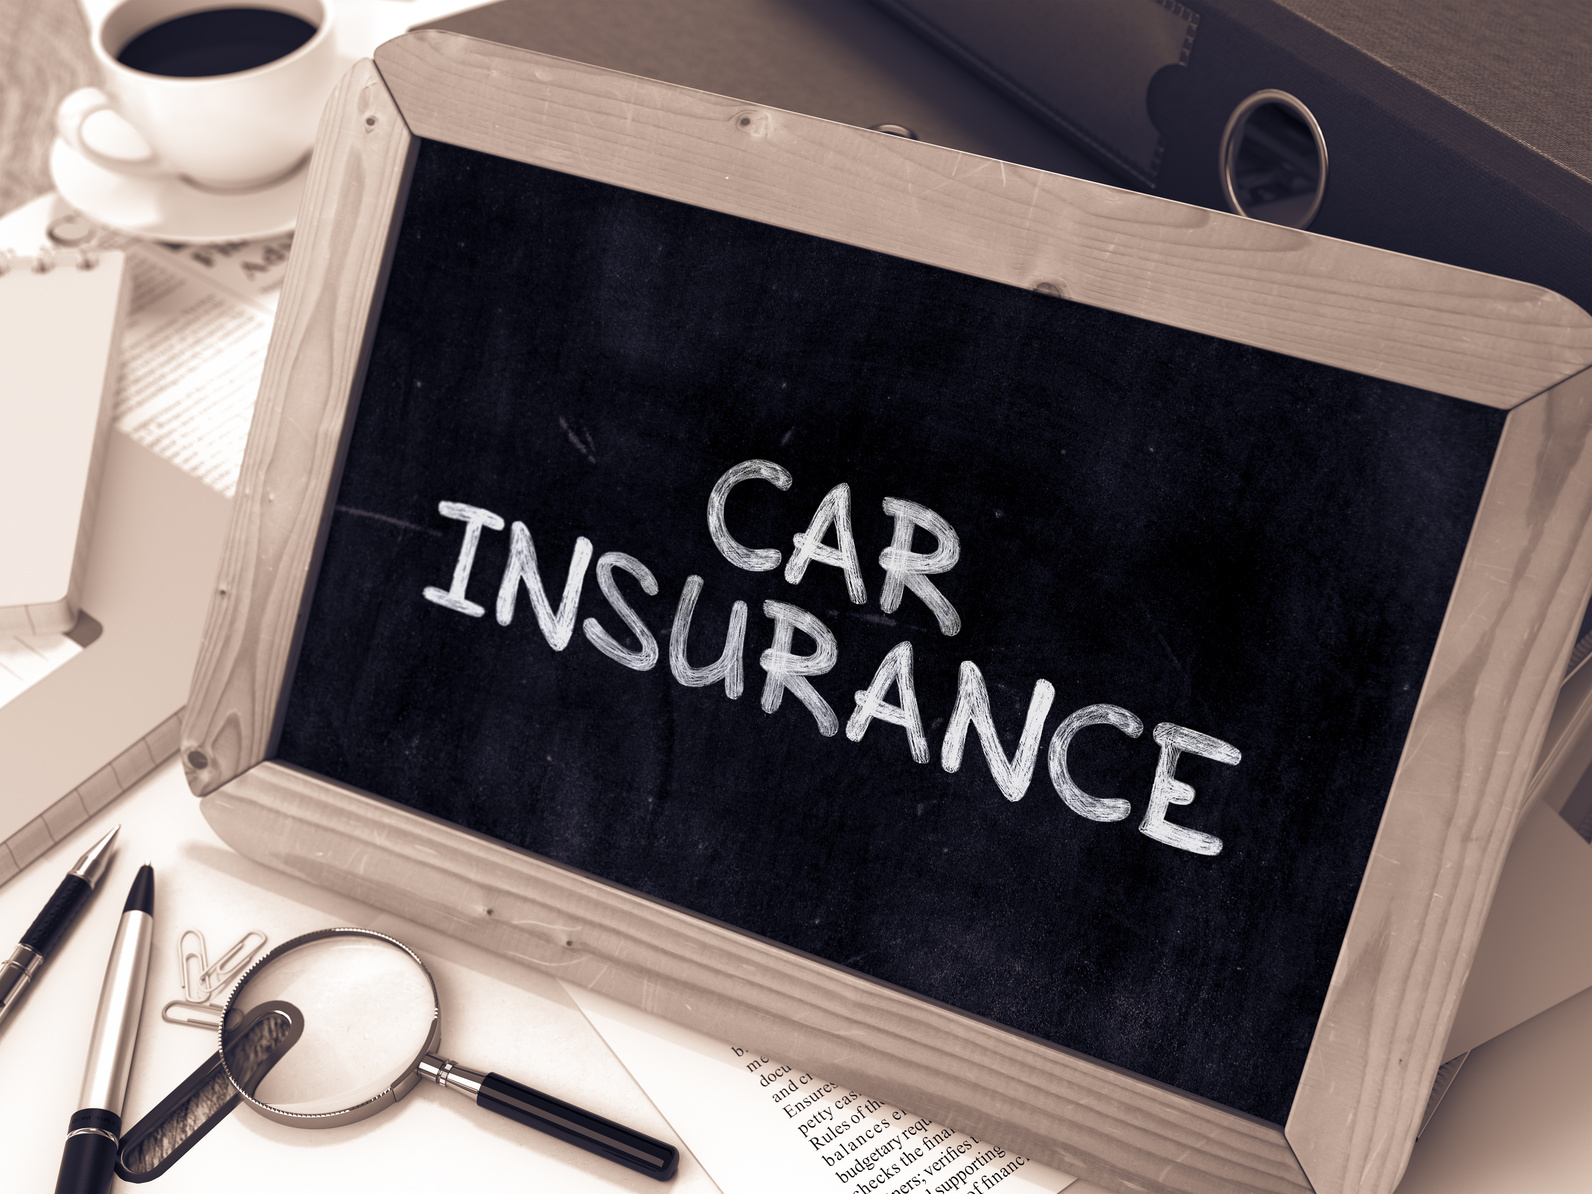 Four Good Reasons to Switch Car insurance